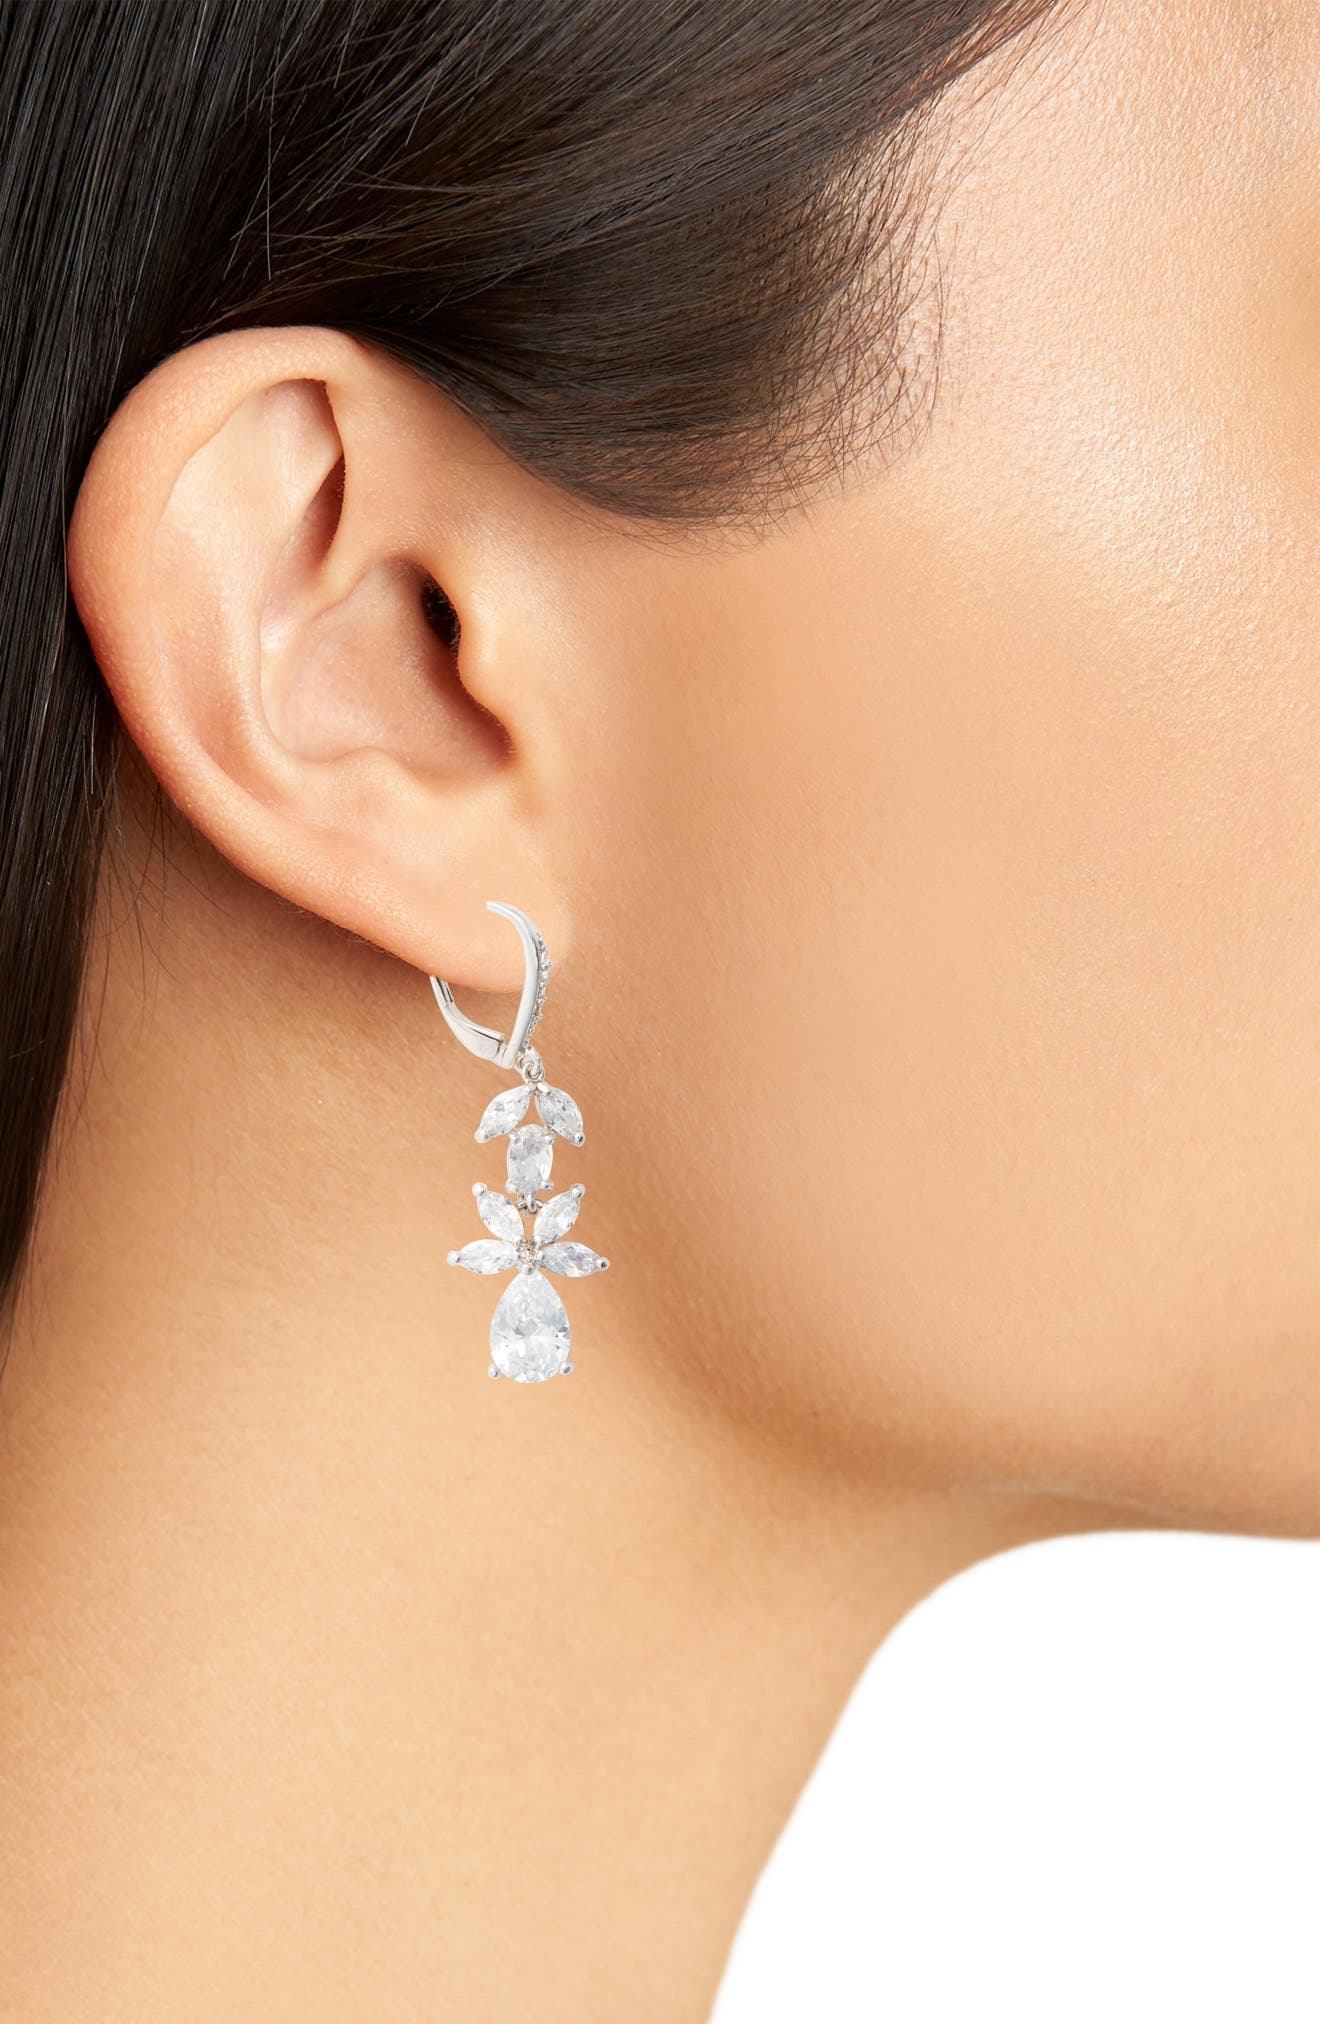 Floral Cubic Zirconia Earrings,                             Alternate thumbnail 2, color,                             WHITE/ SILVER